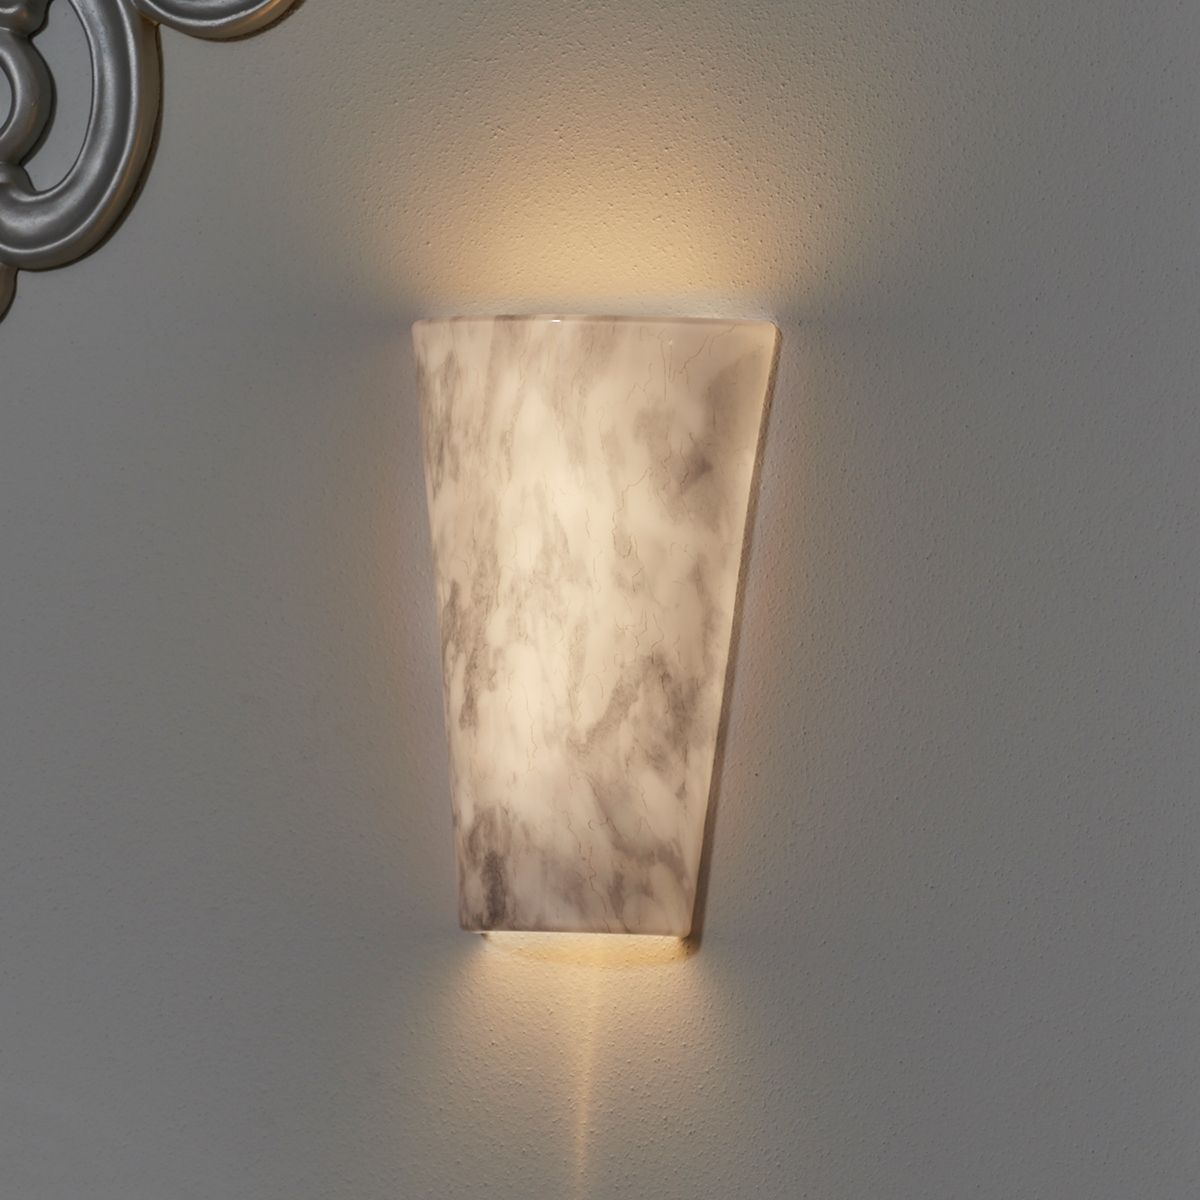 Vivid Stone Sconce Wireless Conical Led Battery Powered